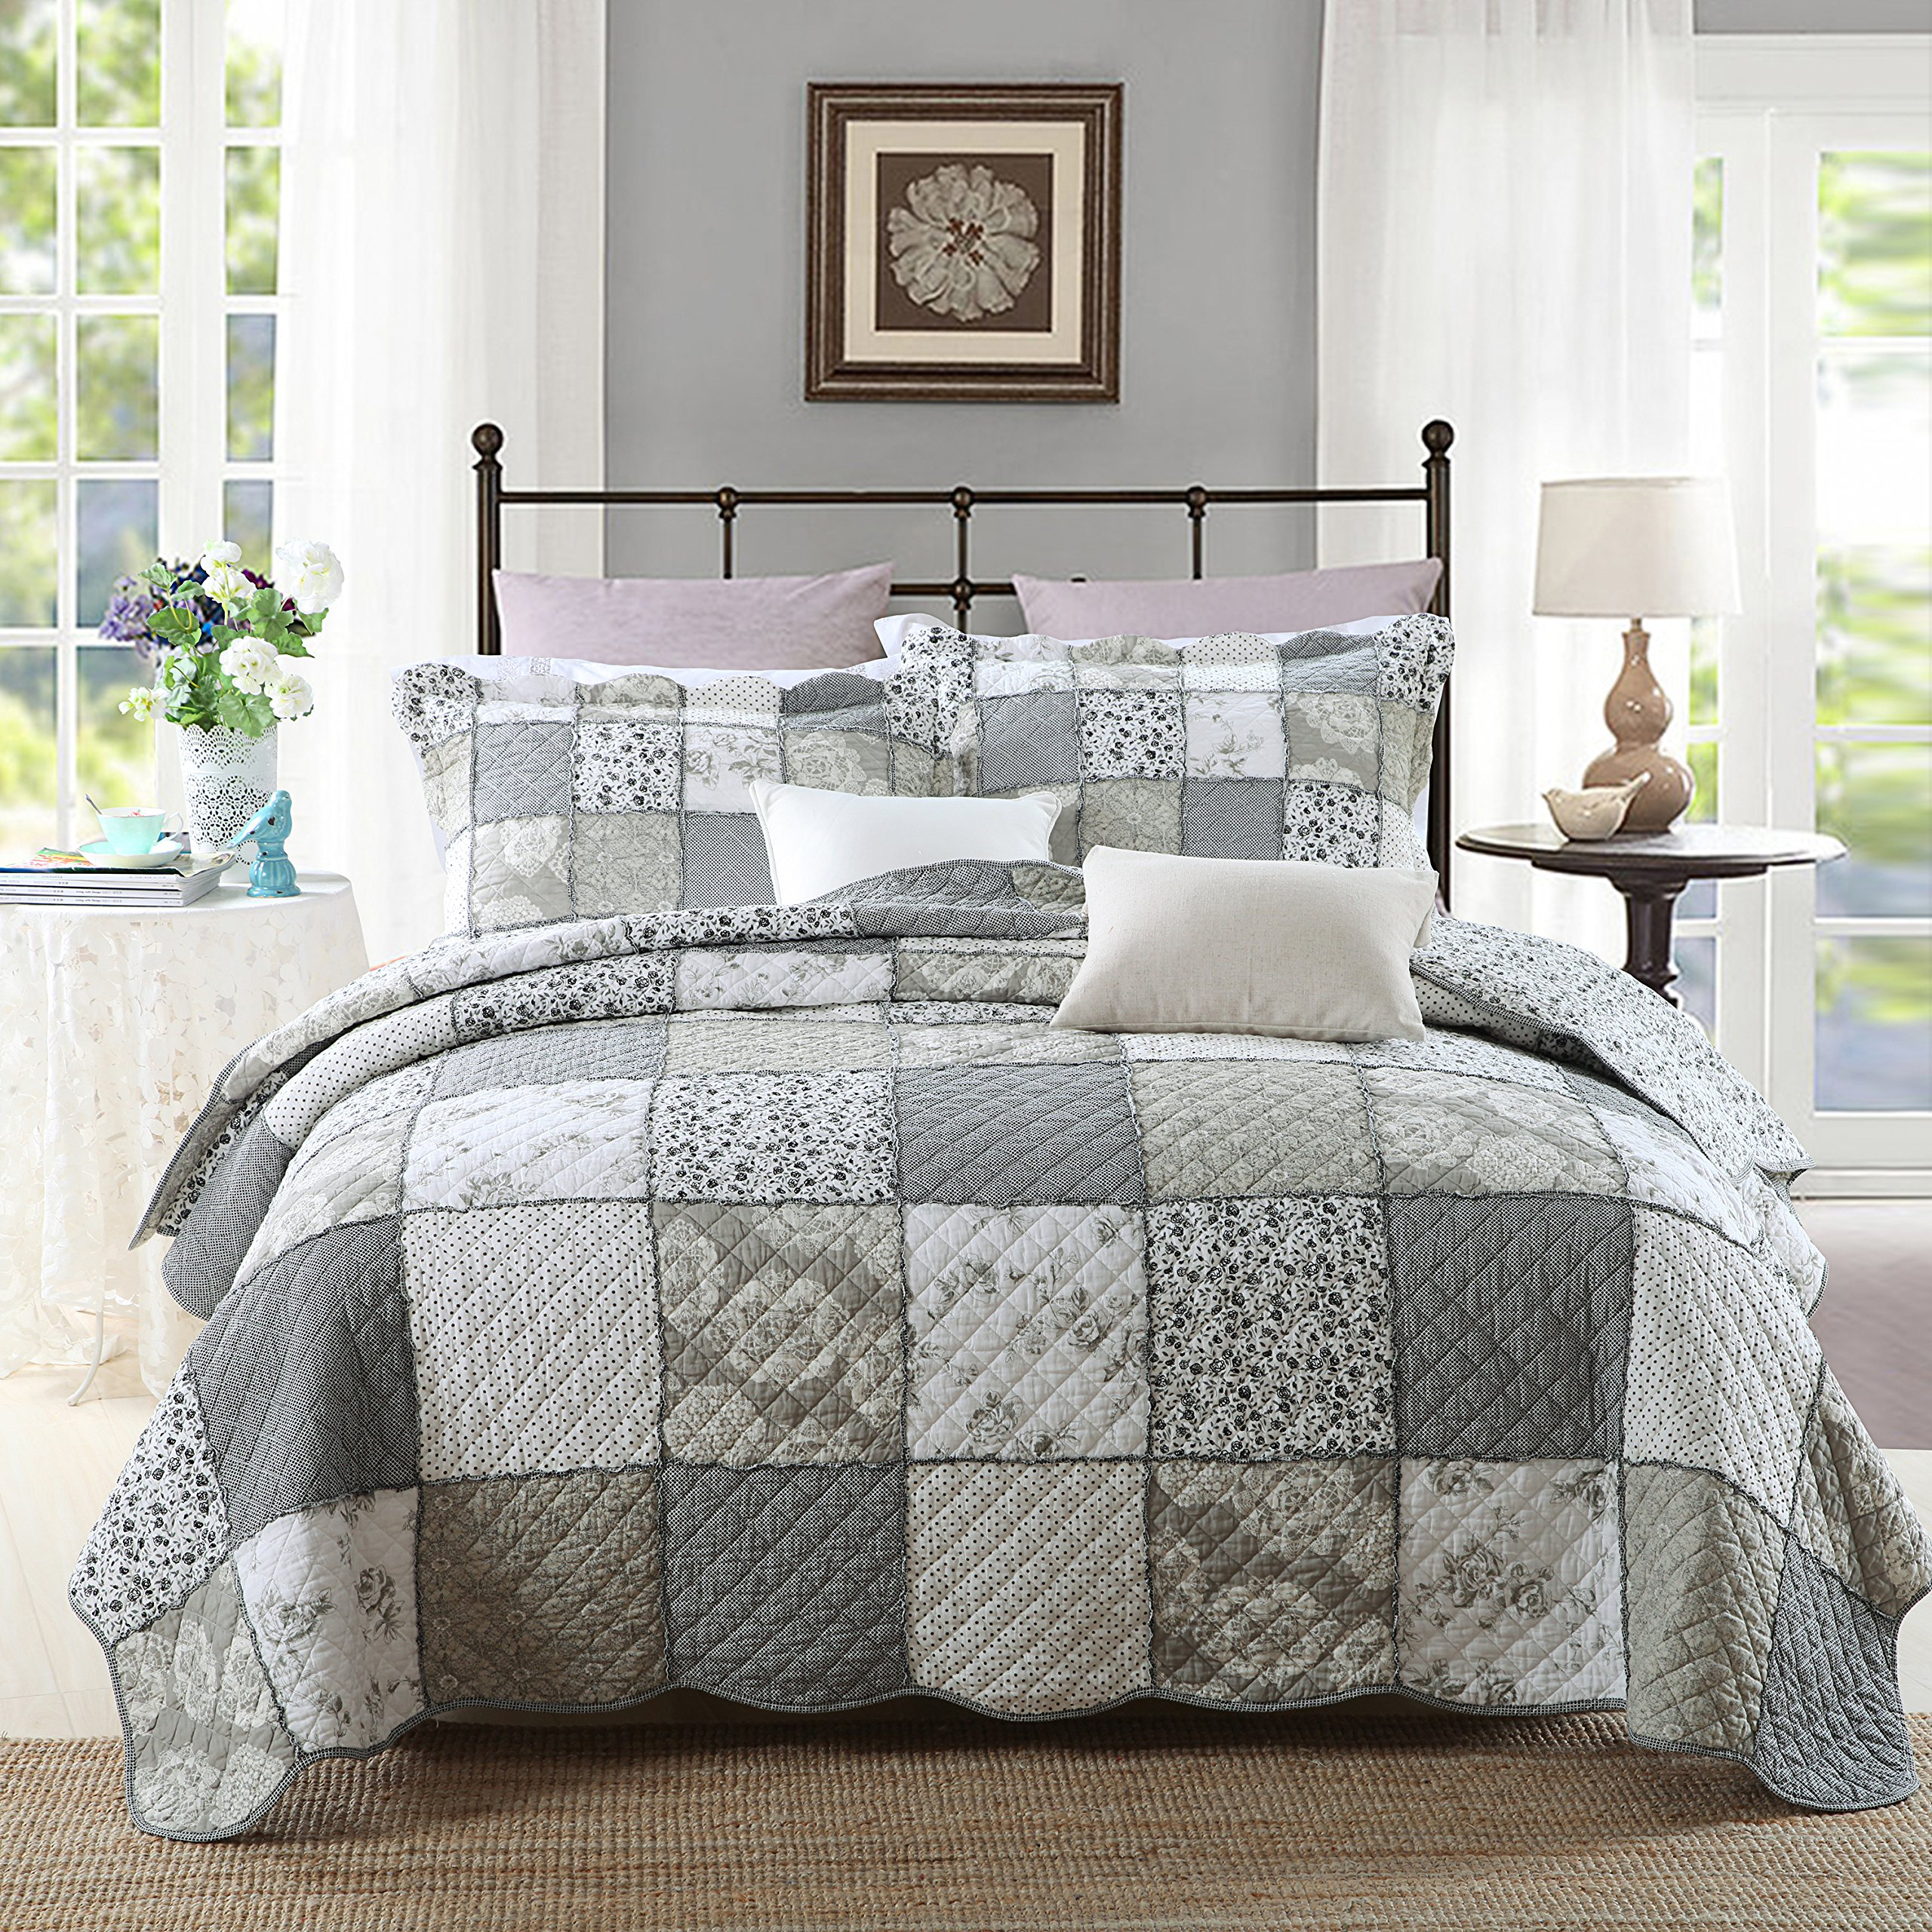 3-Piece Quilt Set Pure Cotton, Patchwork Bedspread Set, Finely Stitched, Coverlet Bed cover, Queen Size by PERYOUN